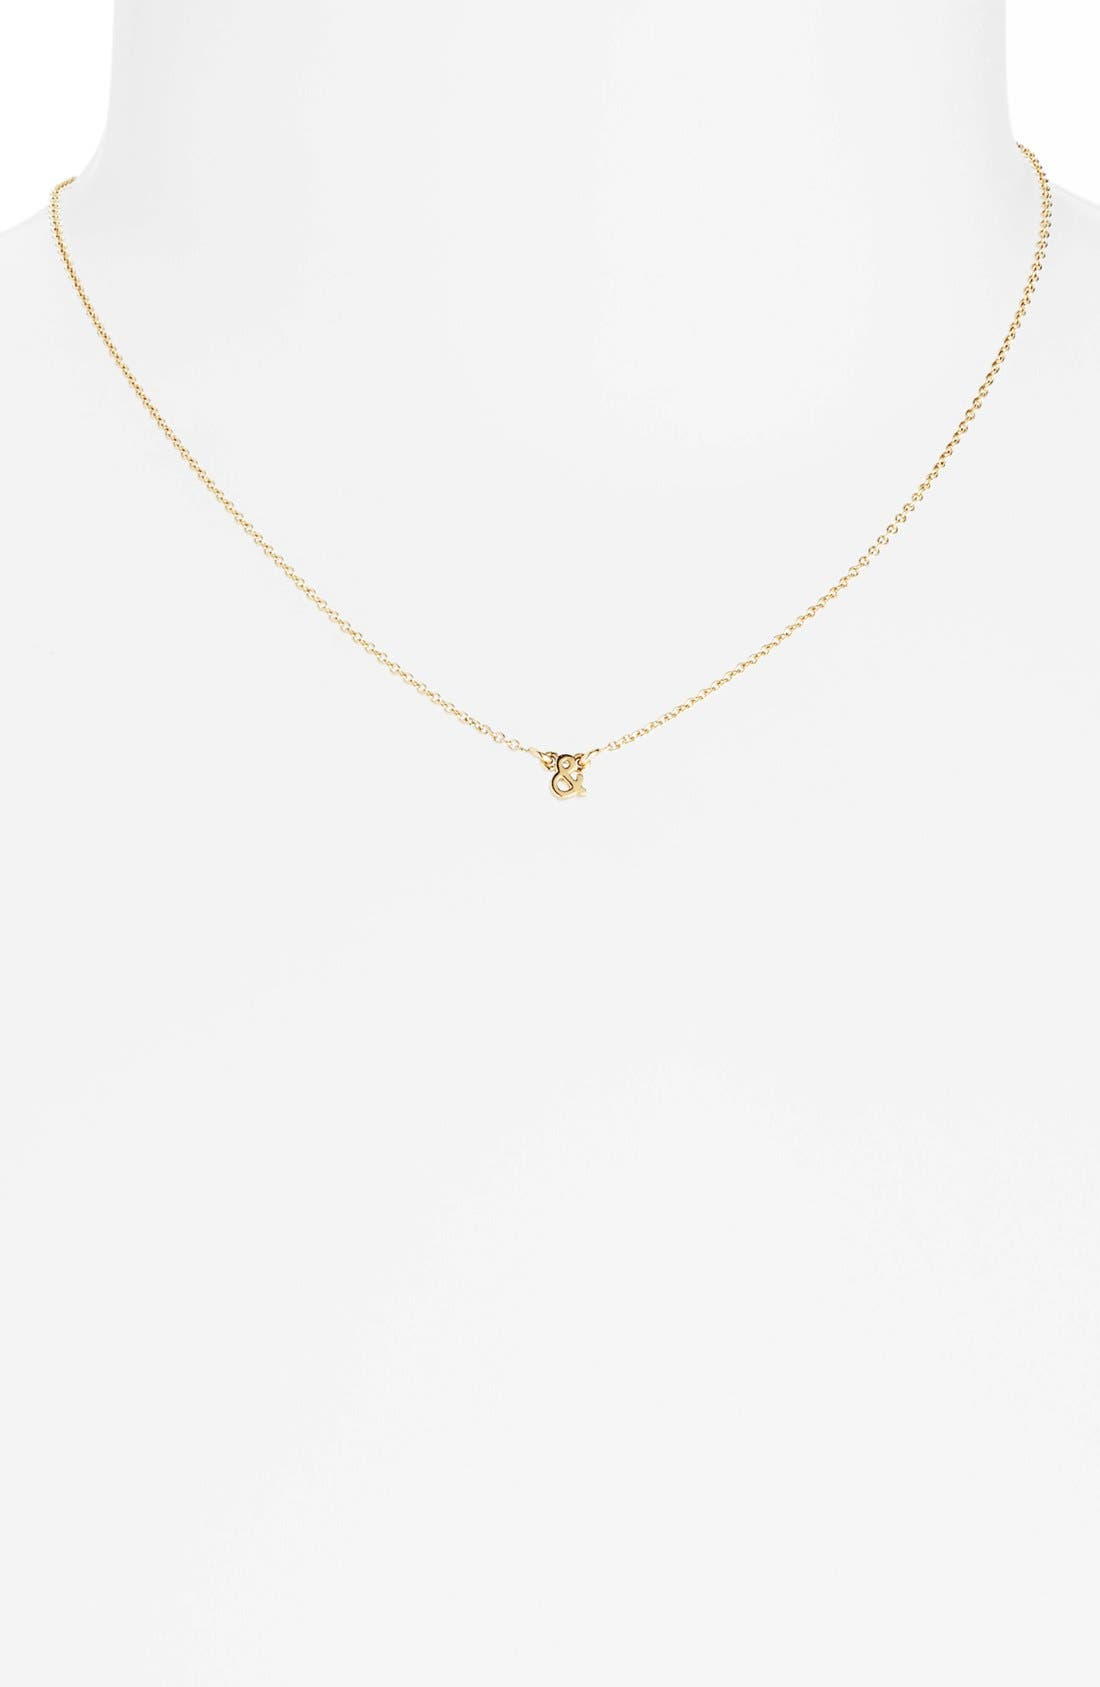 Alternate Image 1 Selected - kate spade new york 'say yes' ampersand pendant necklace